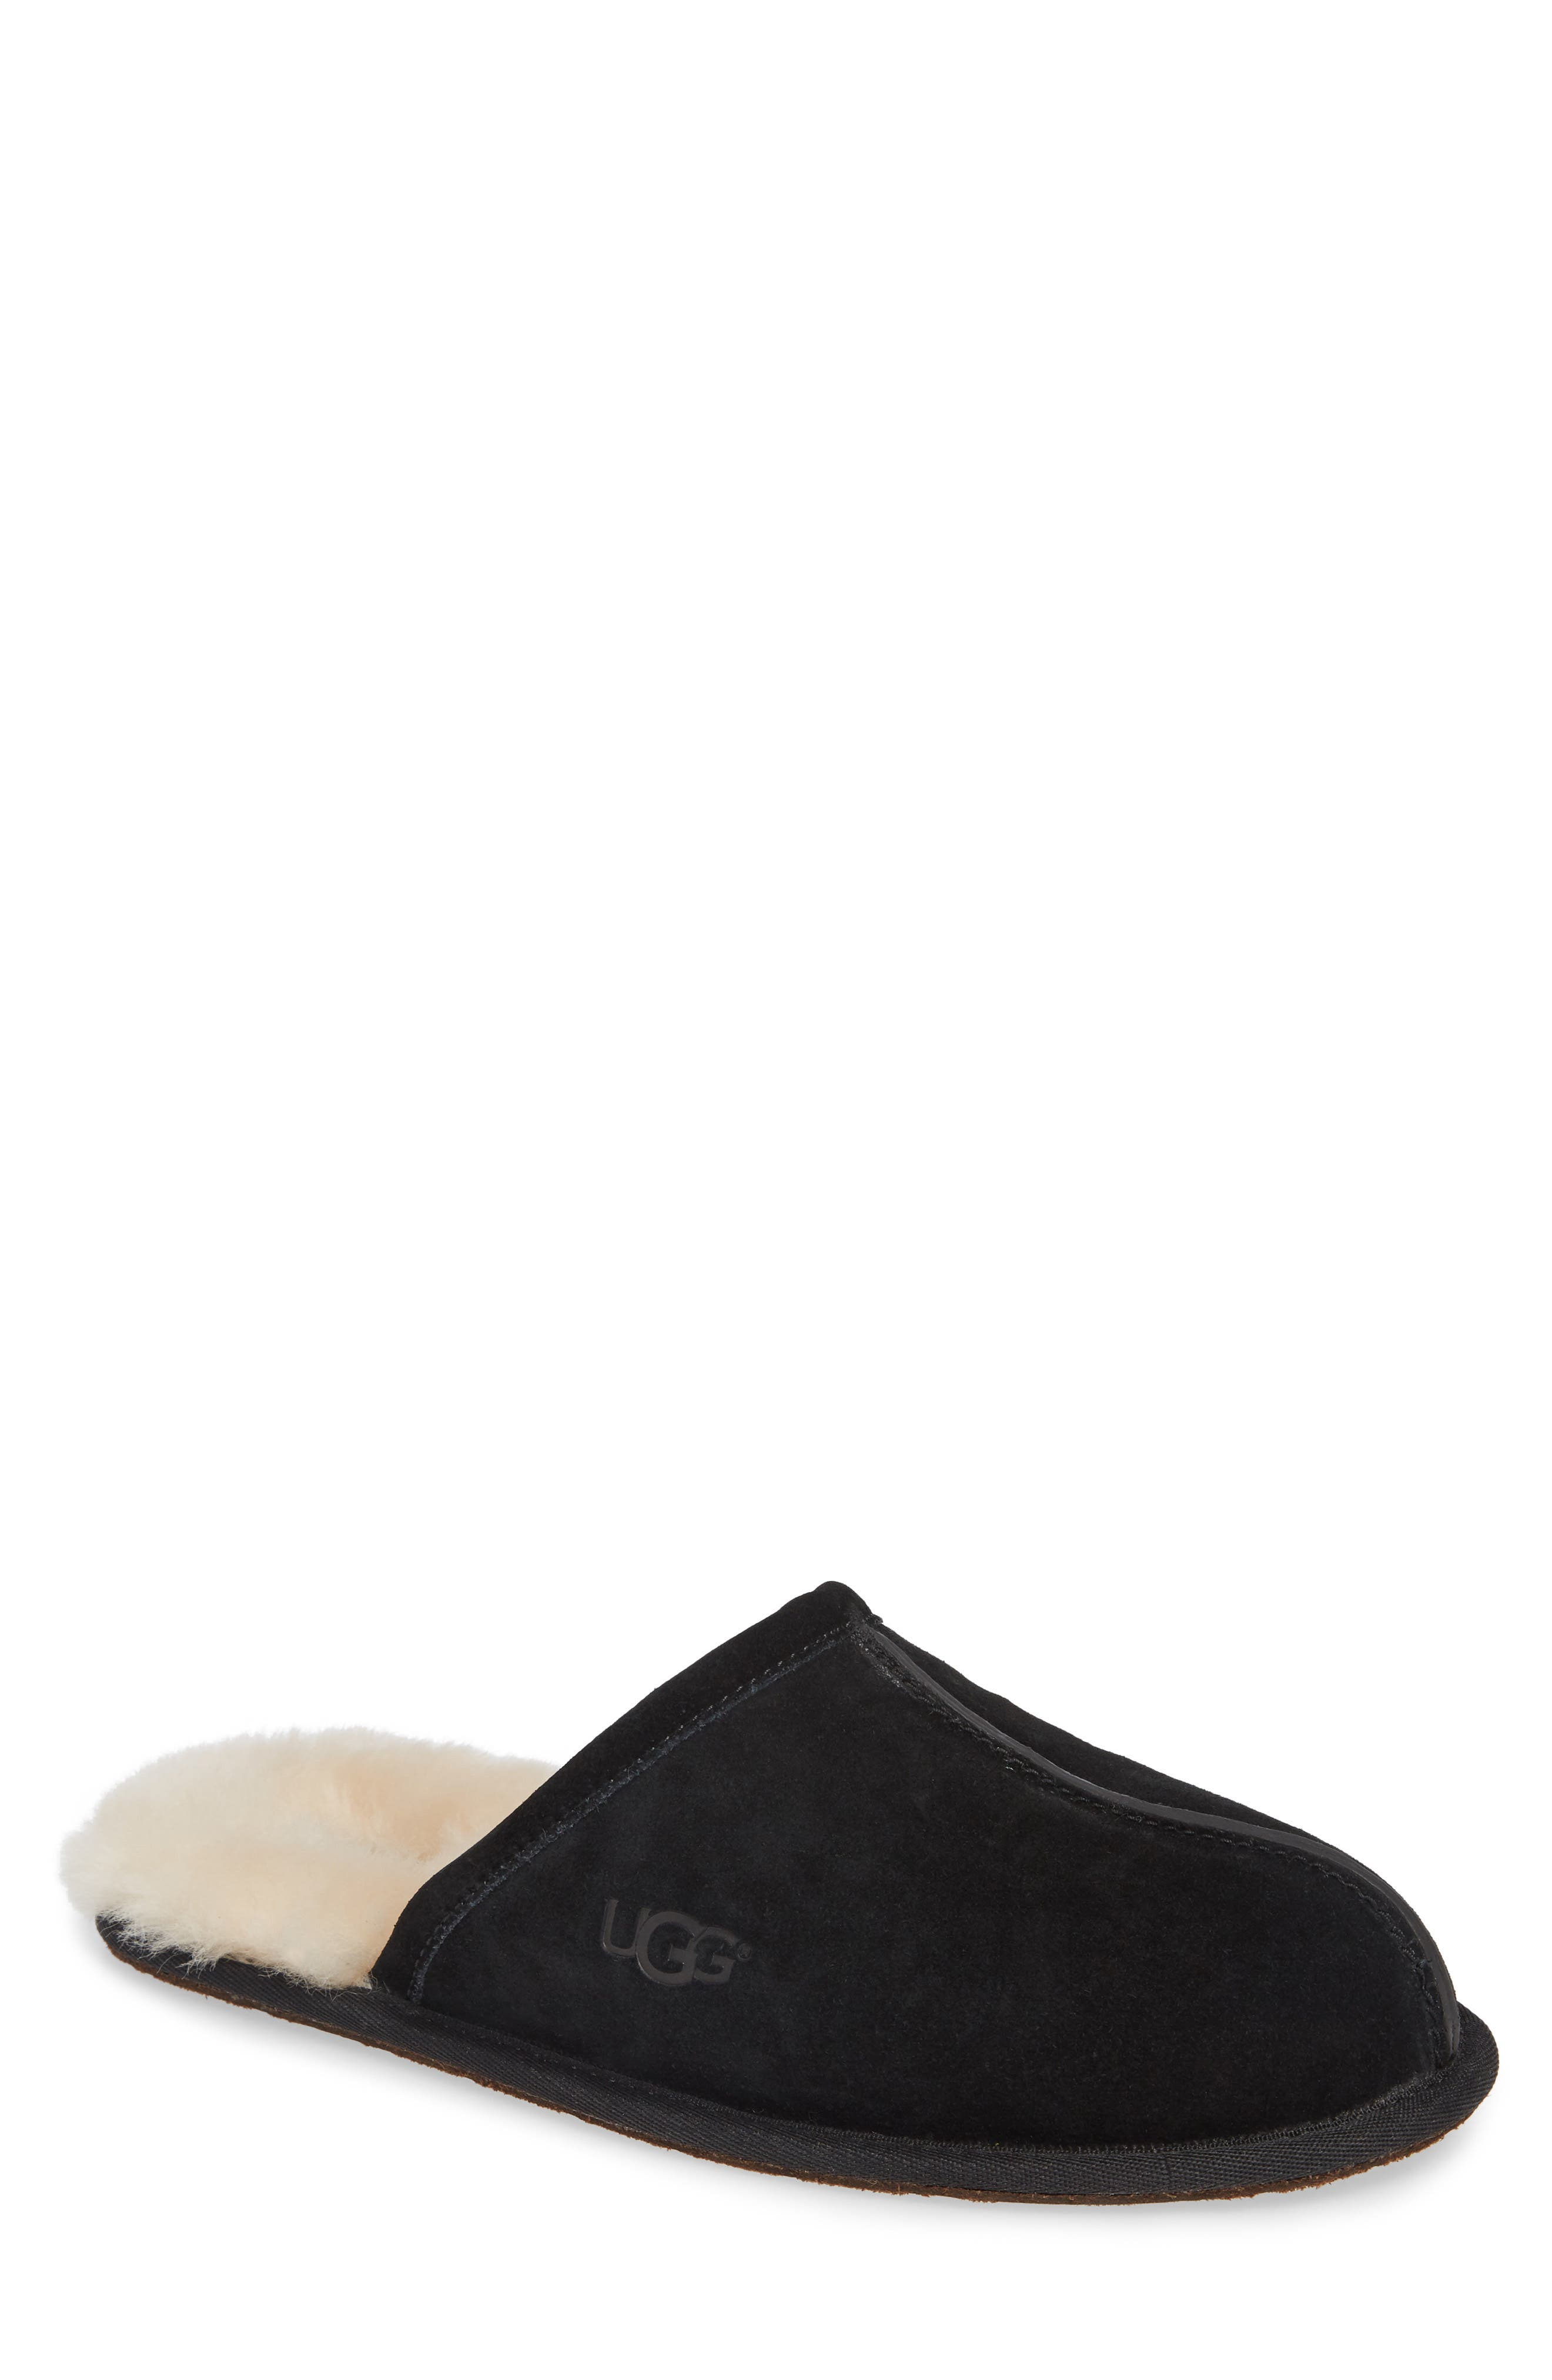 UGG<SUP>®</SUP>, Scuff Slipper, Main thumbnail 1, color, BLACK SUEDE